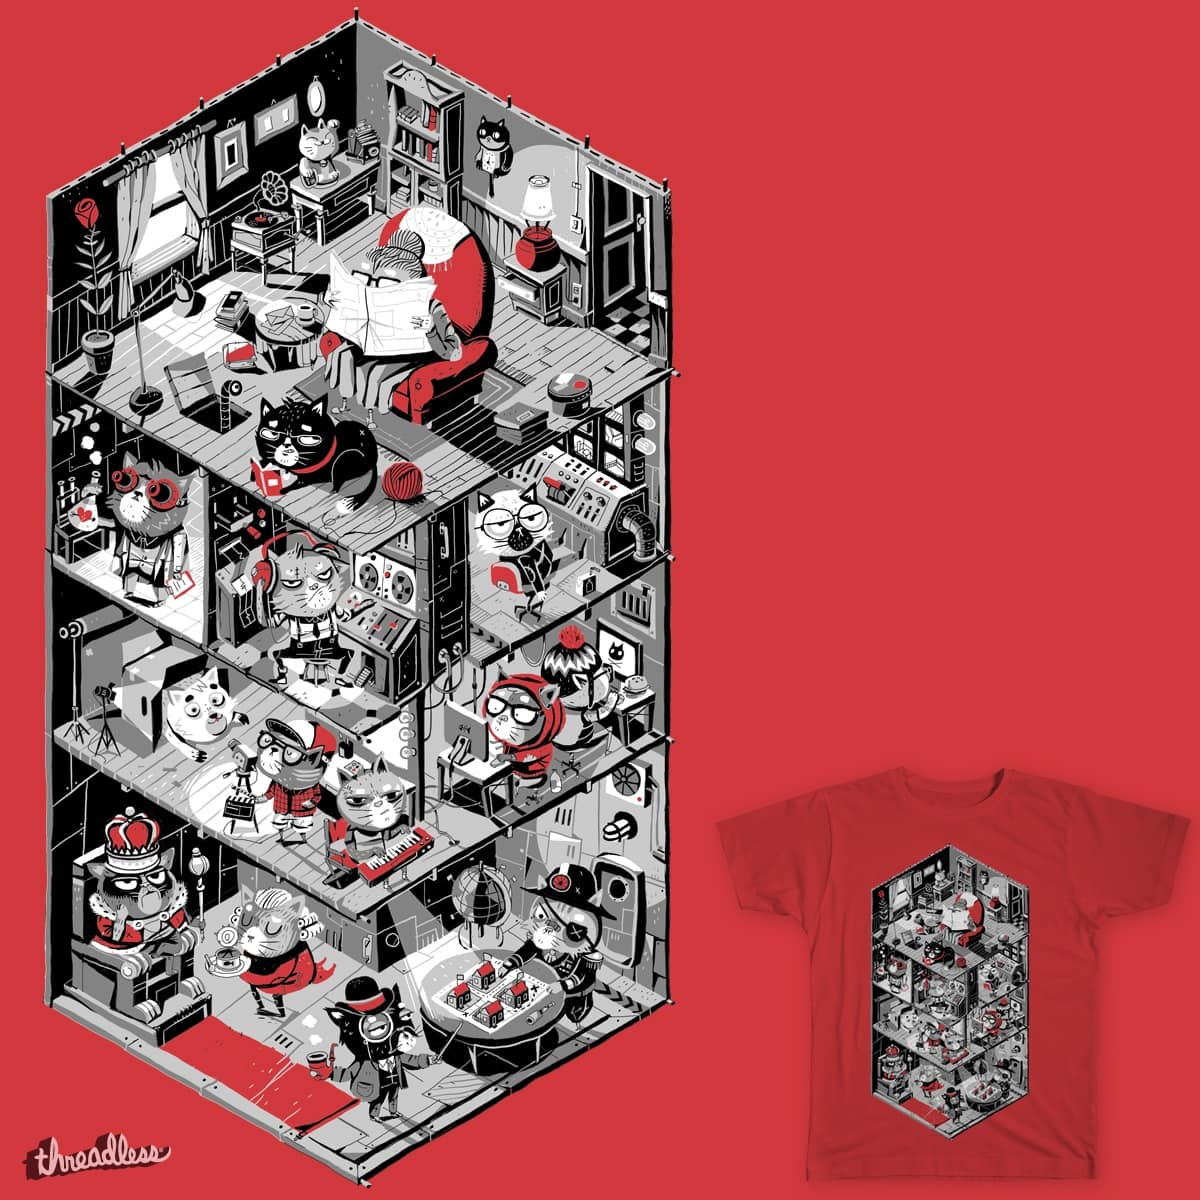 Big Kitty Is Watching You by malo_tocquer on Threadless